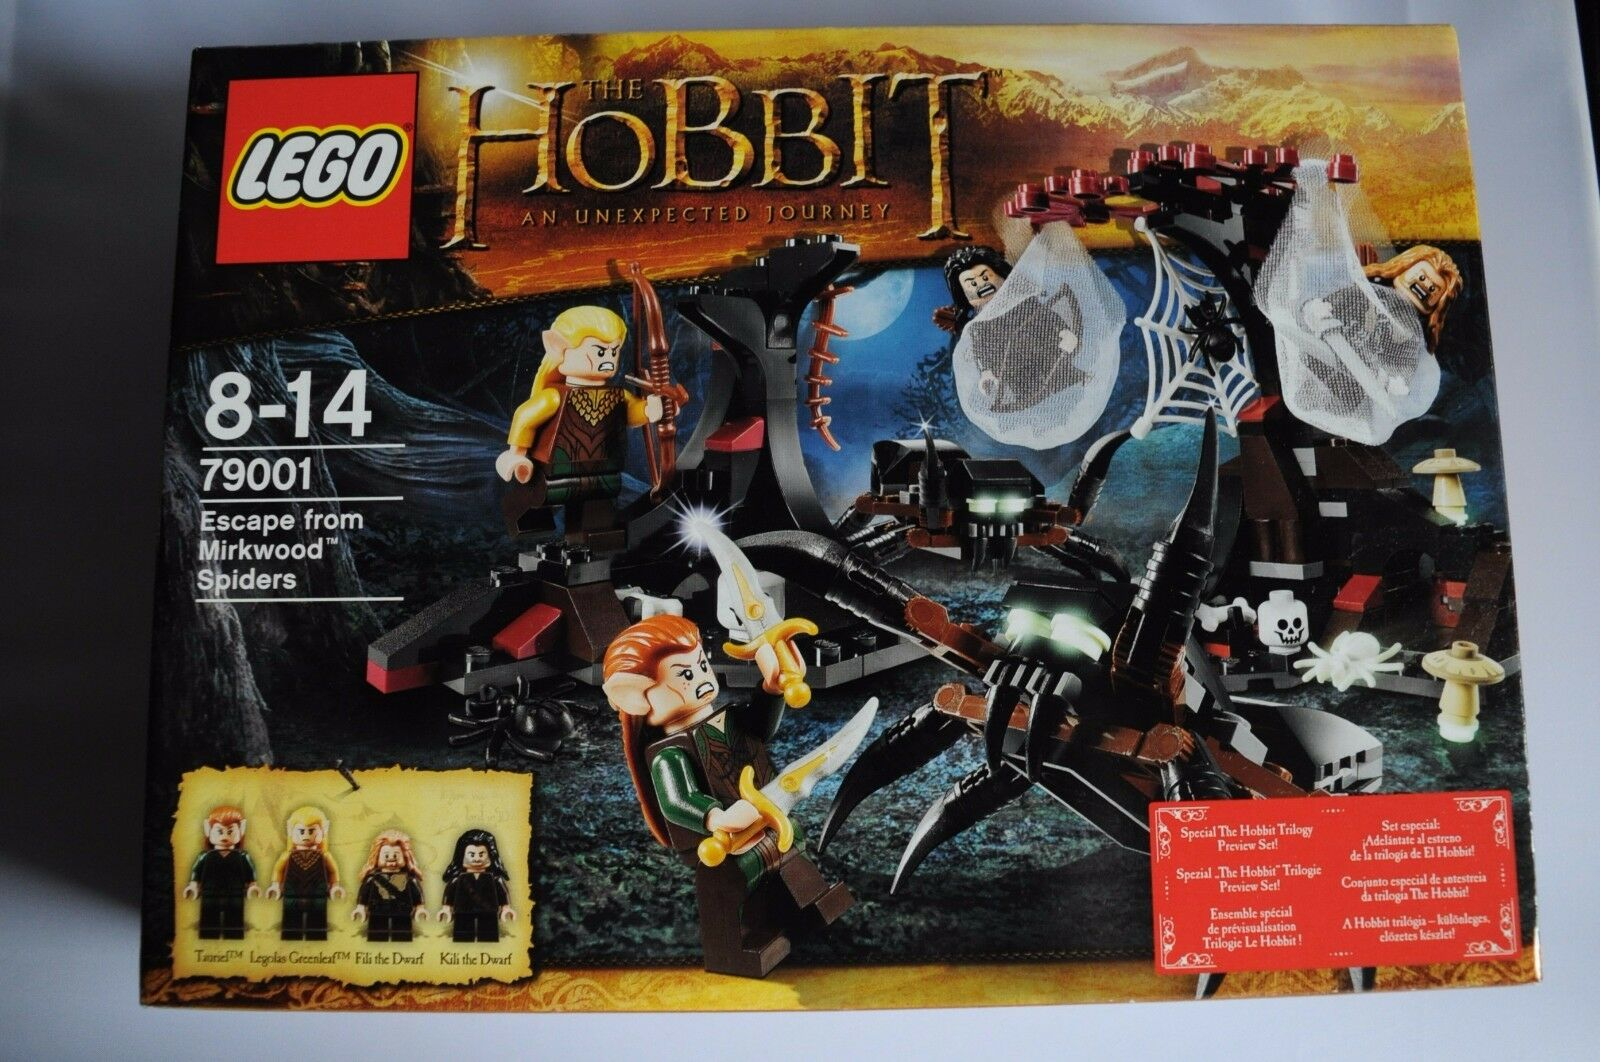 LEGO THE HOBBIT ESCAPE FROM MIRKWOOD SPIDERS BOXED SET SEALED